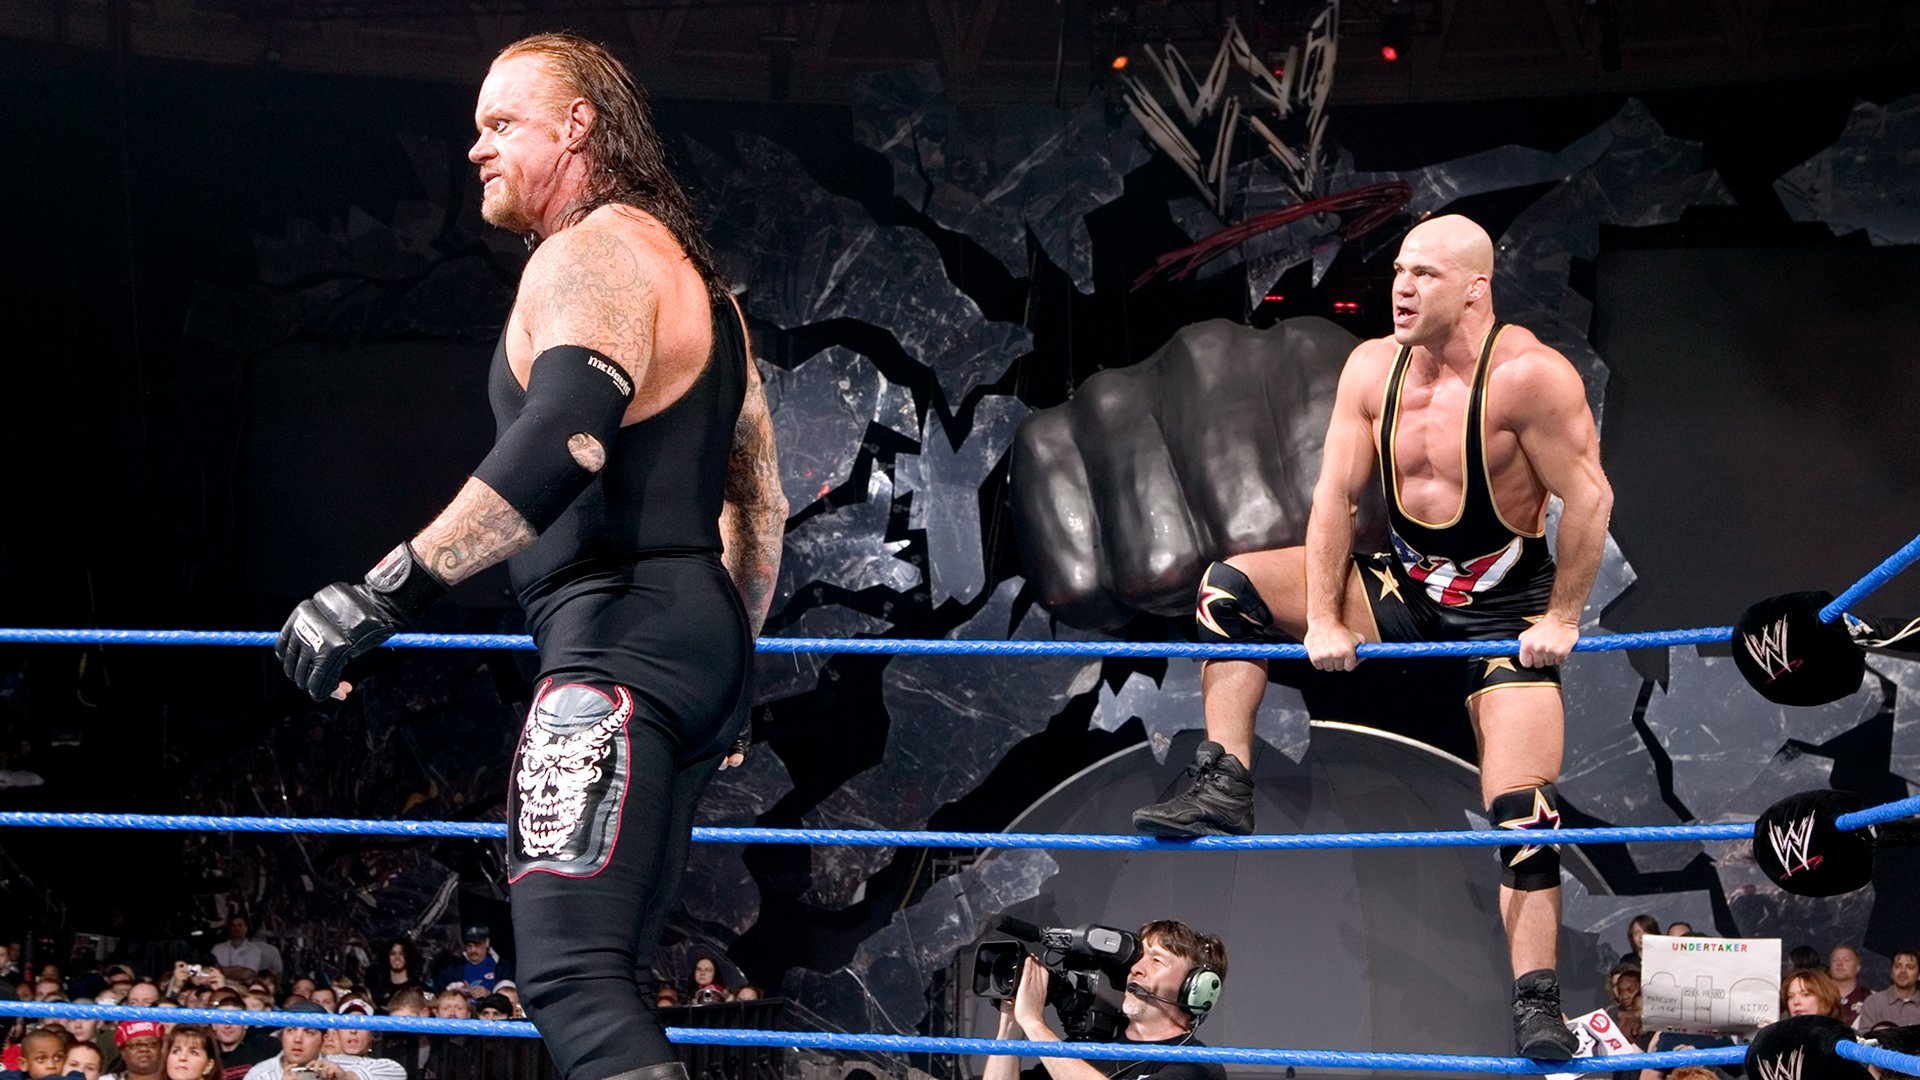 Kurt Angle & The Undertaker vs. Mark Henry & MNM: SmackDown, 17 Fev, 2006